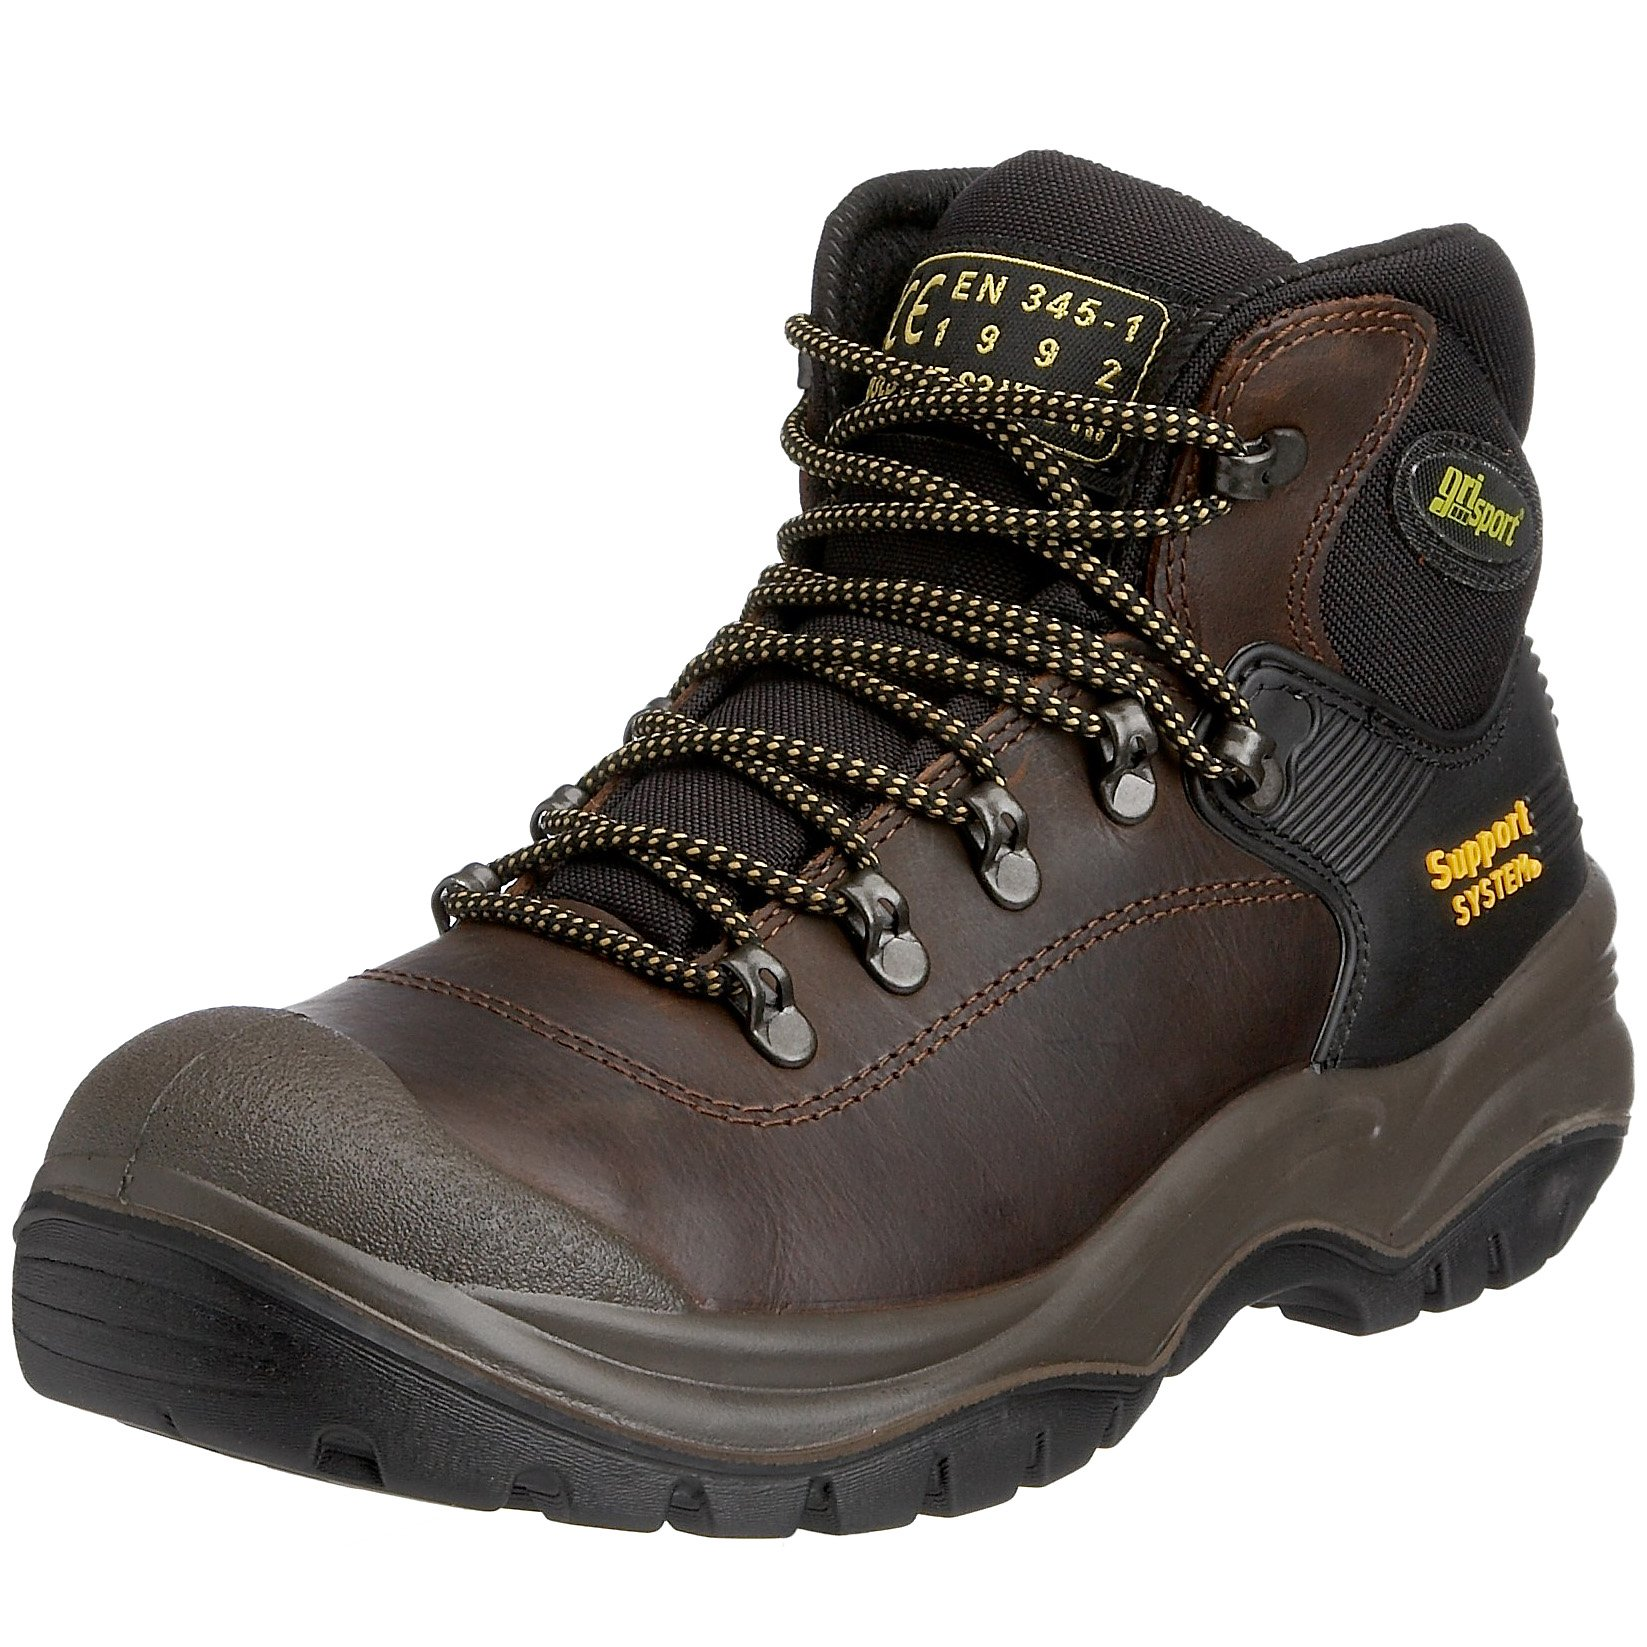 9170241e159 Best Rated in Men s Work   Utility Footwear   Helpful Customer ...